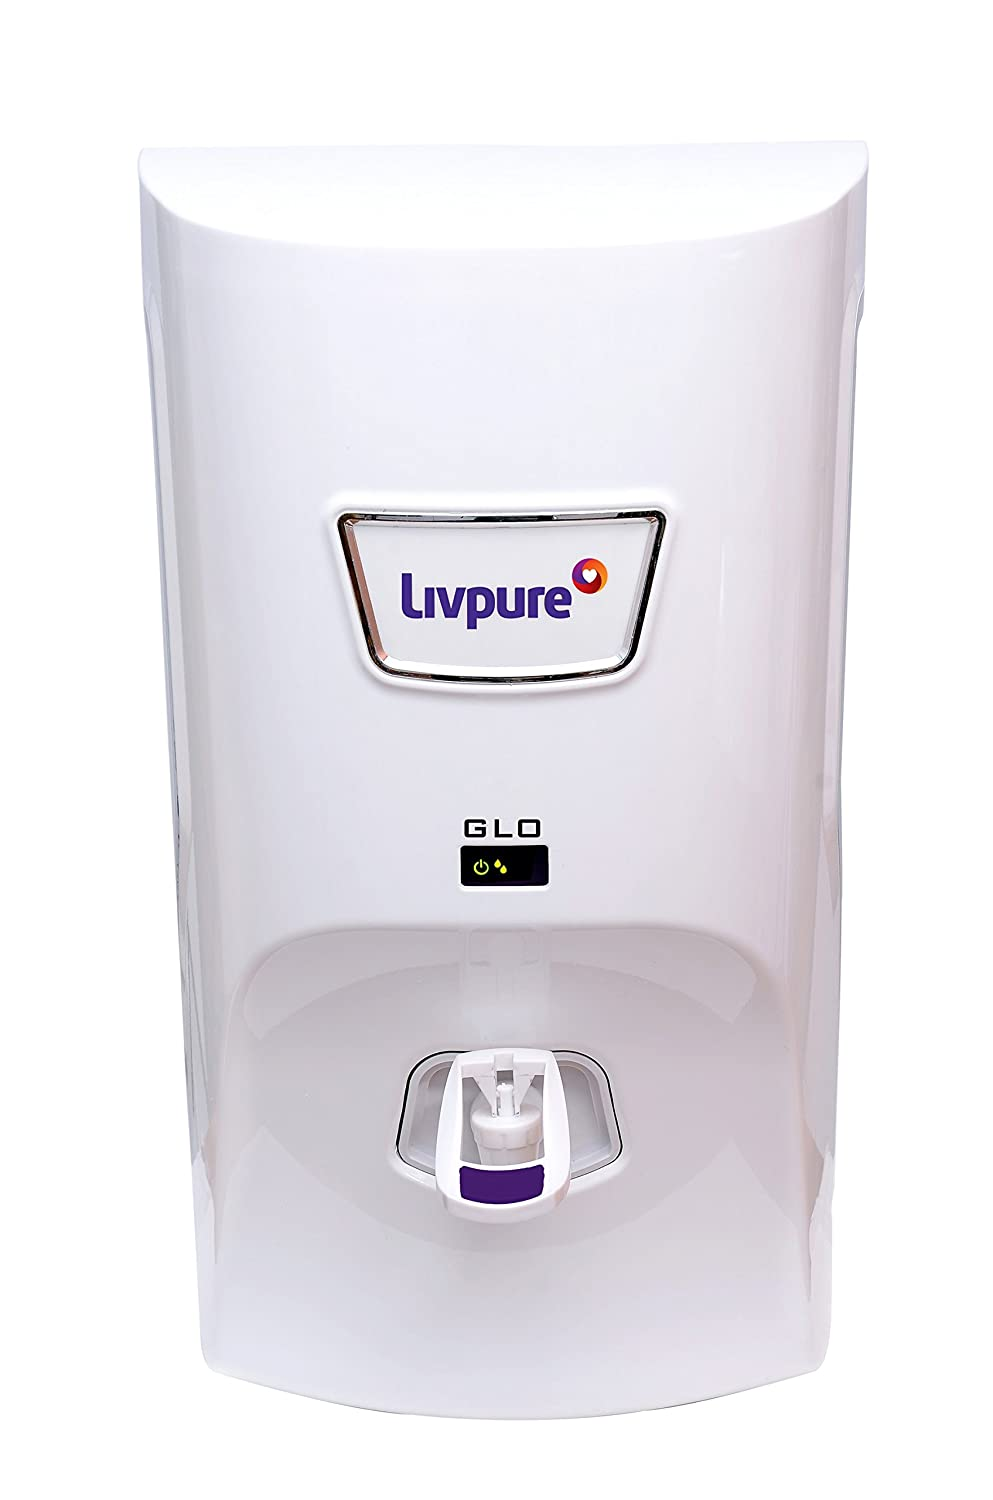 [Rs 250 cashback] Livpure Glo 7-Litre RO + UV + Mineralizer Water Purifier